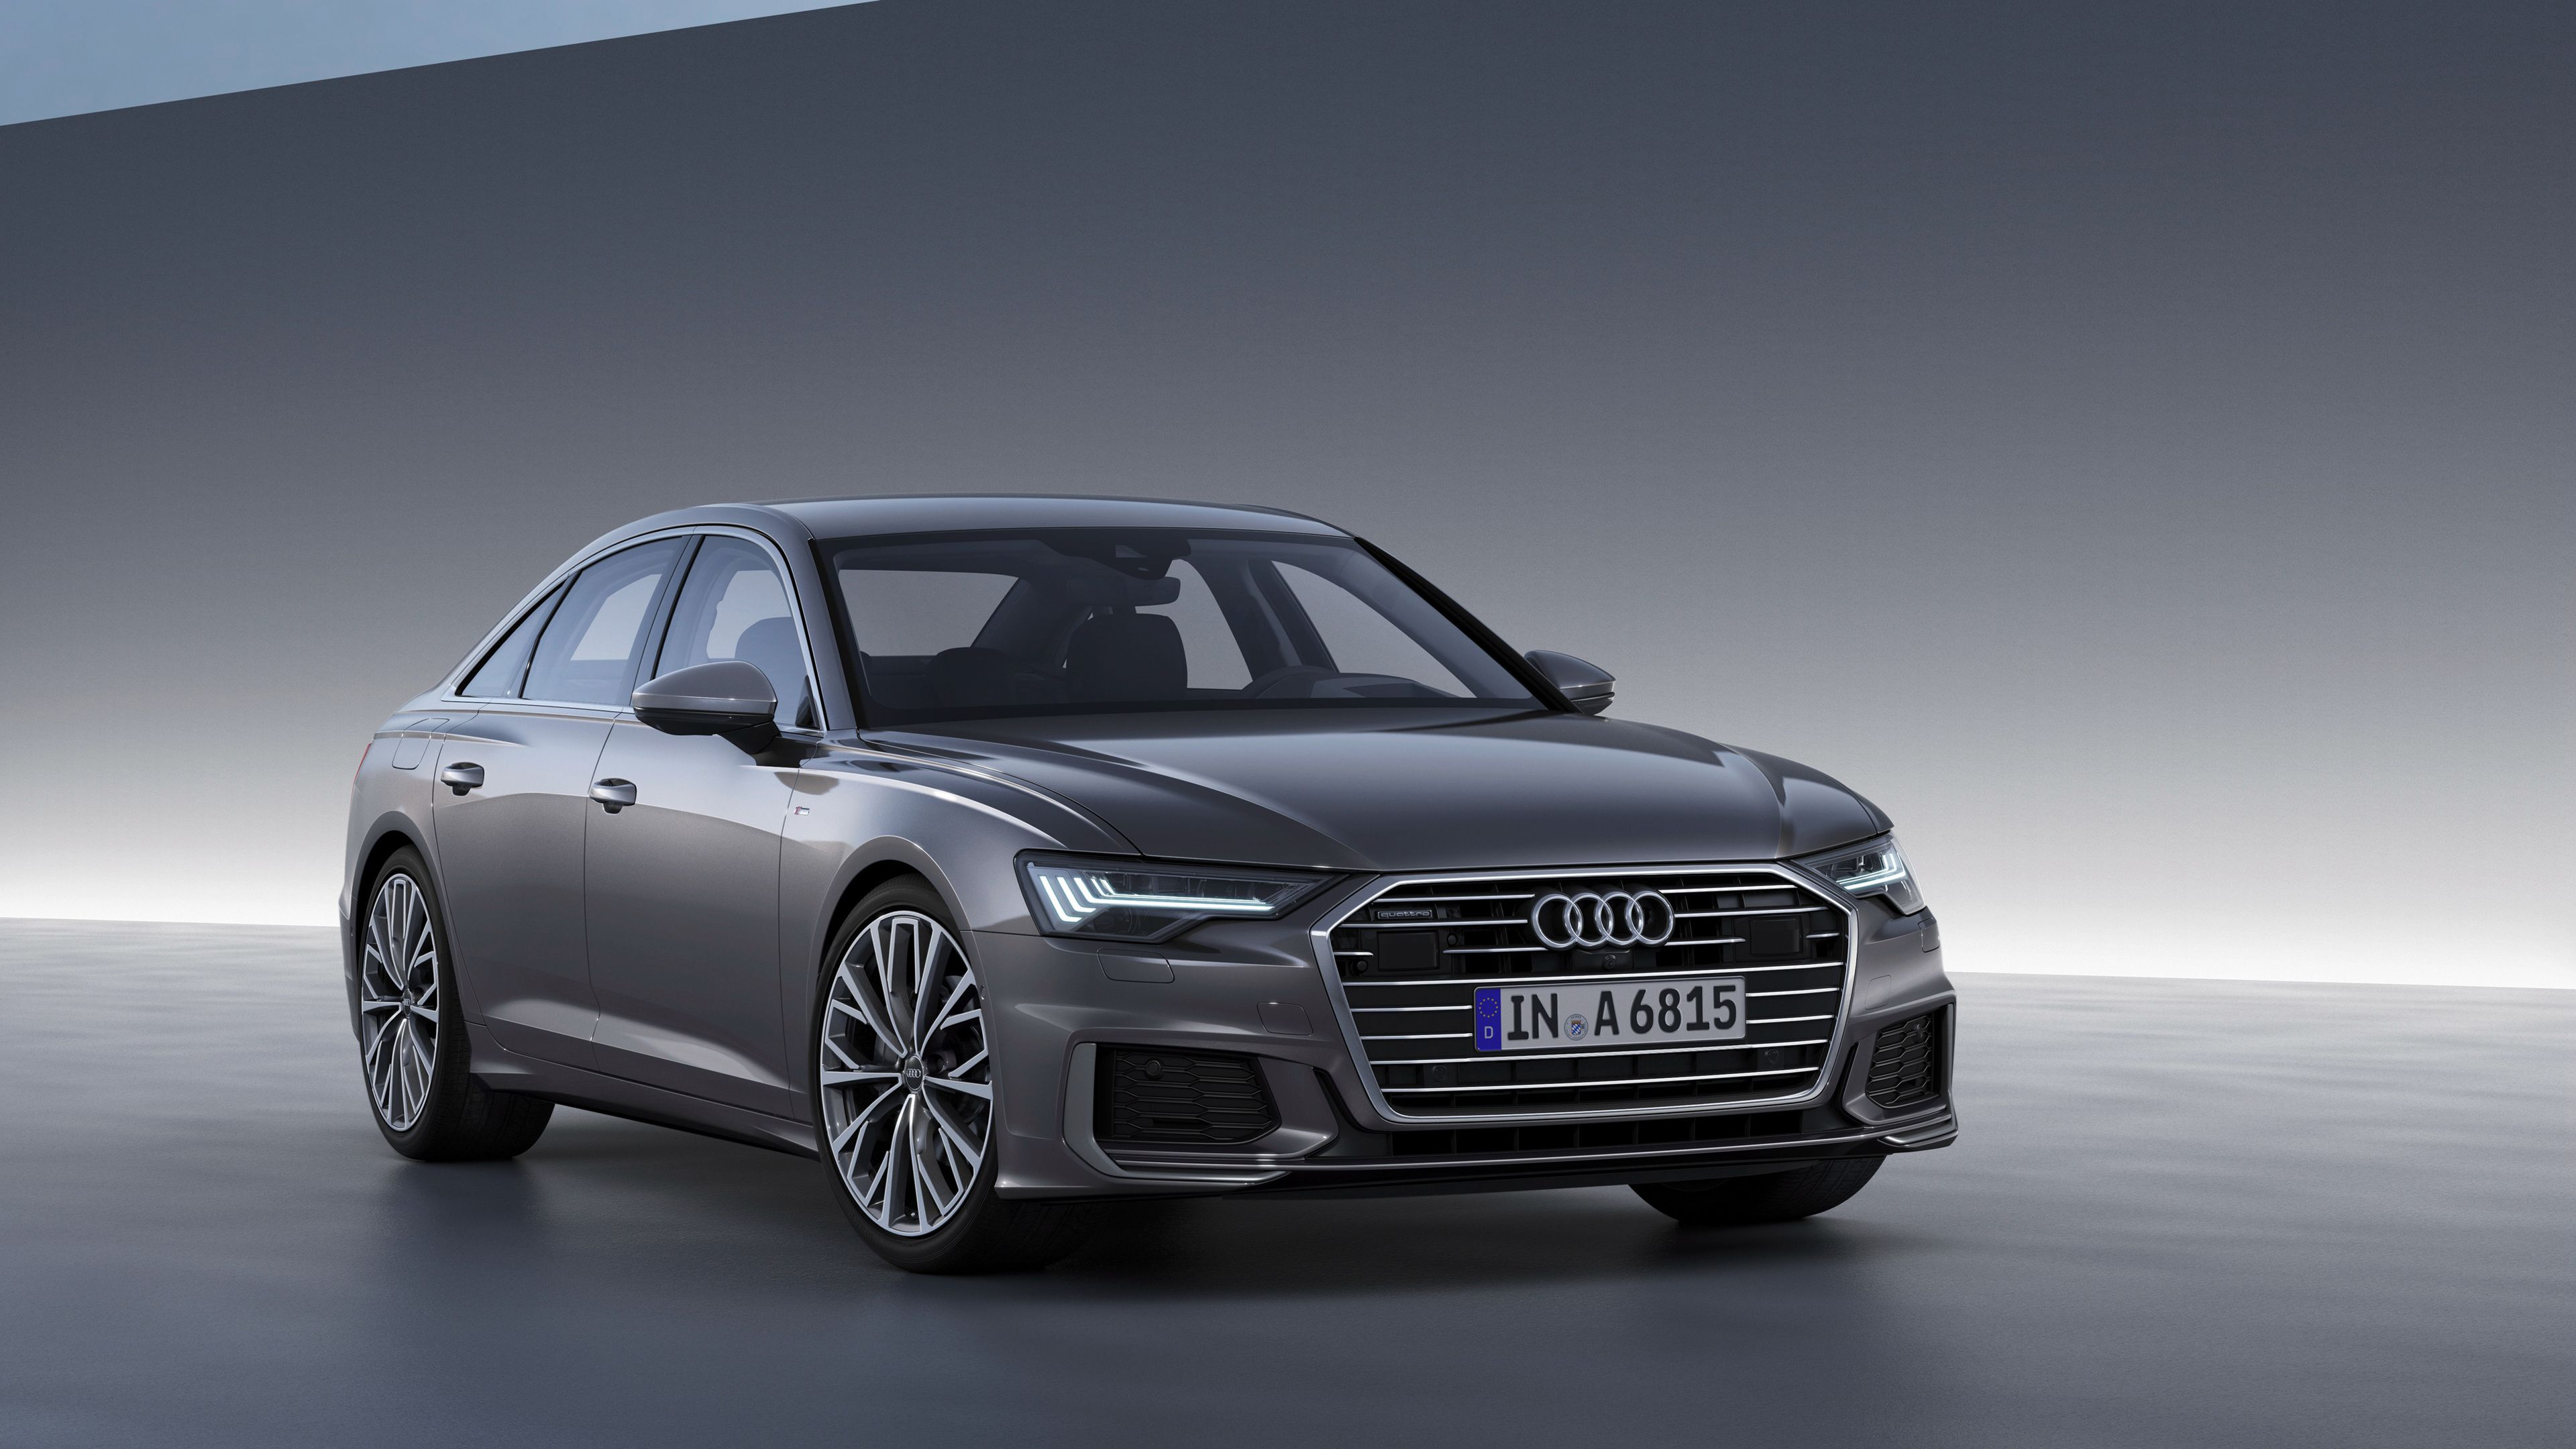 Audi A6 Wallpapers Top Free Audi A6 Backgrounds Wallpaperaccess